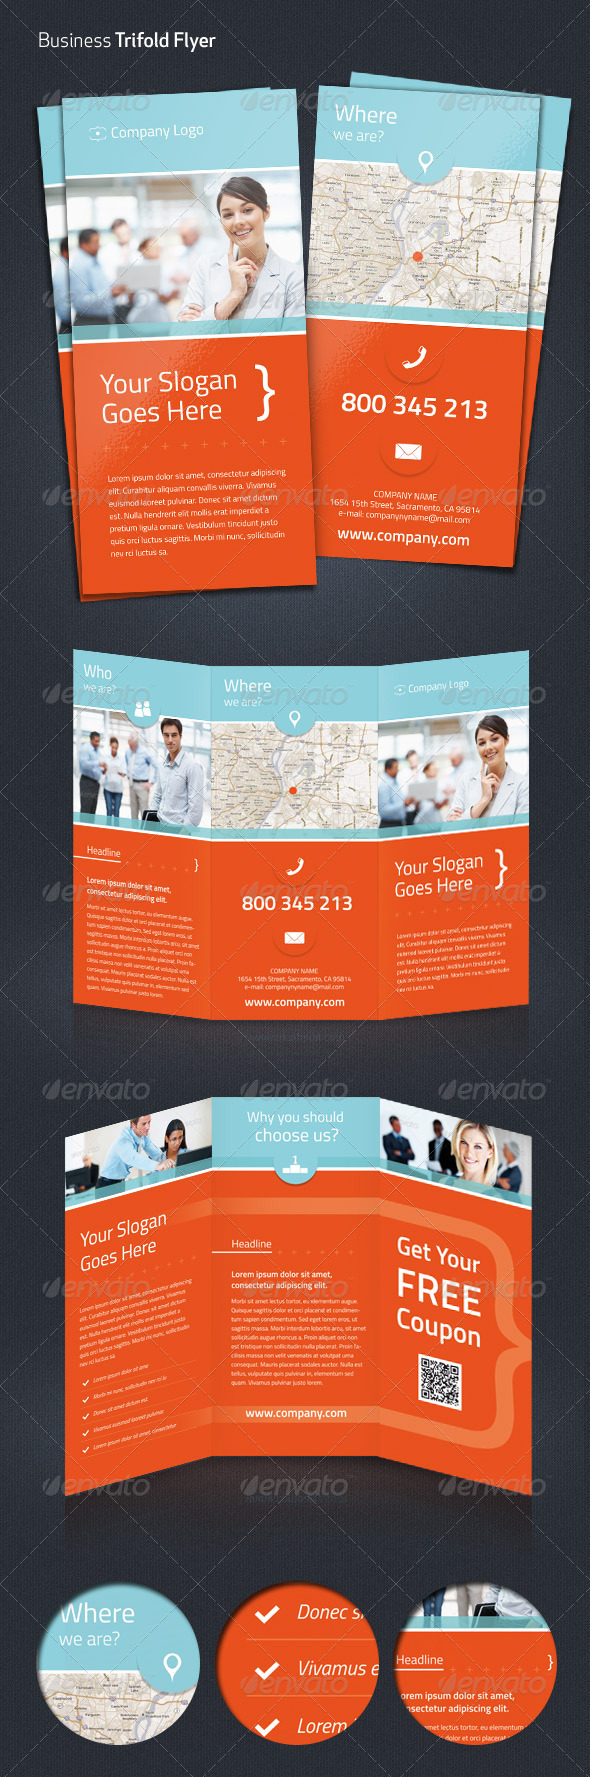 GraphicRiver Business Trifold Flyer 4472965